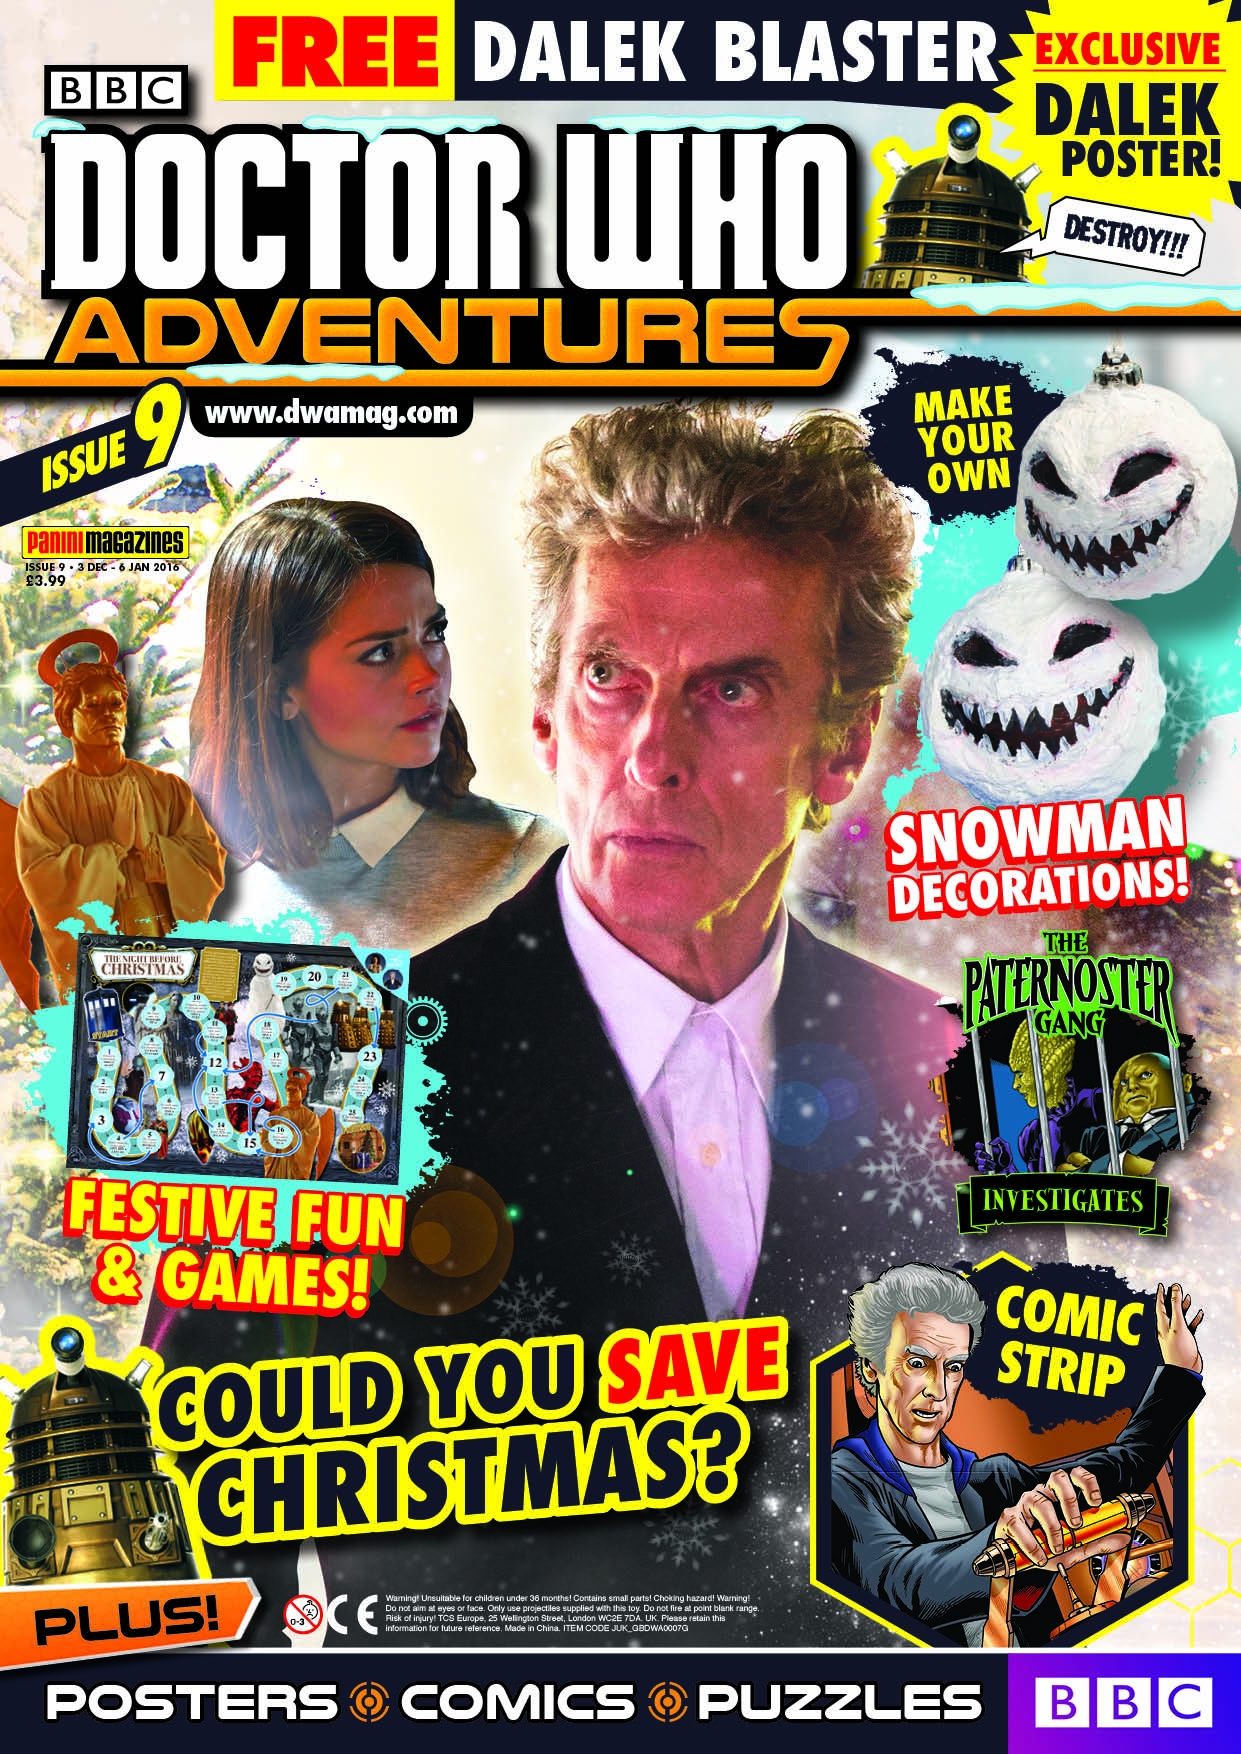 Doctor Who Adventures Issue 9 - Cover (Credit: DWA)